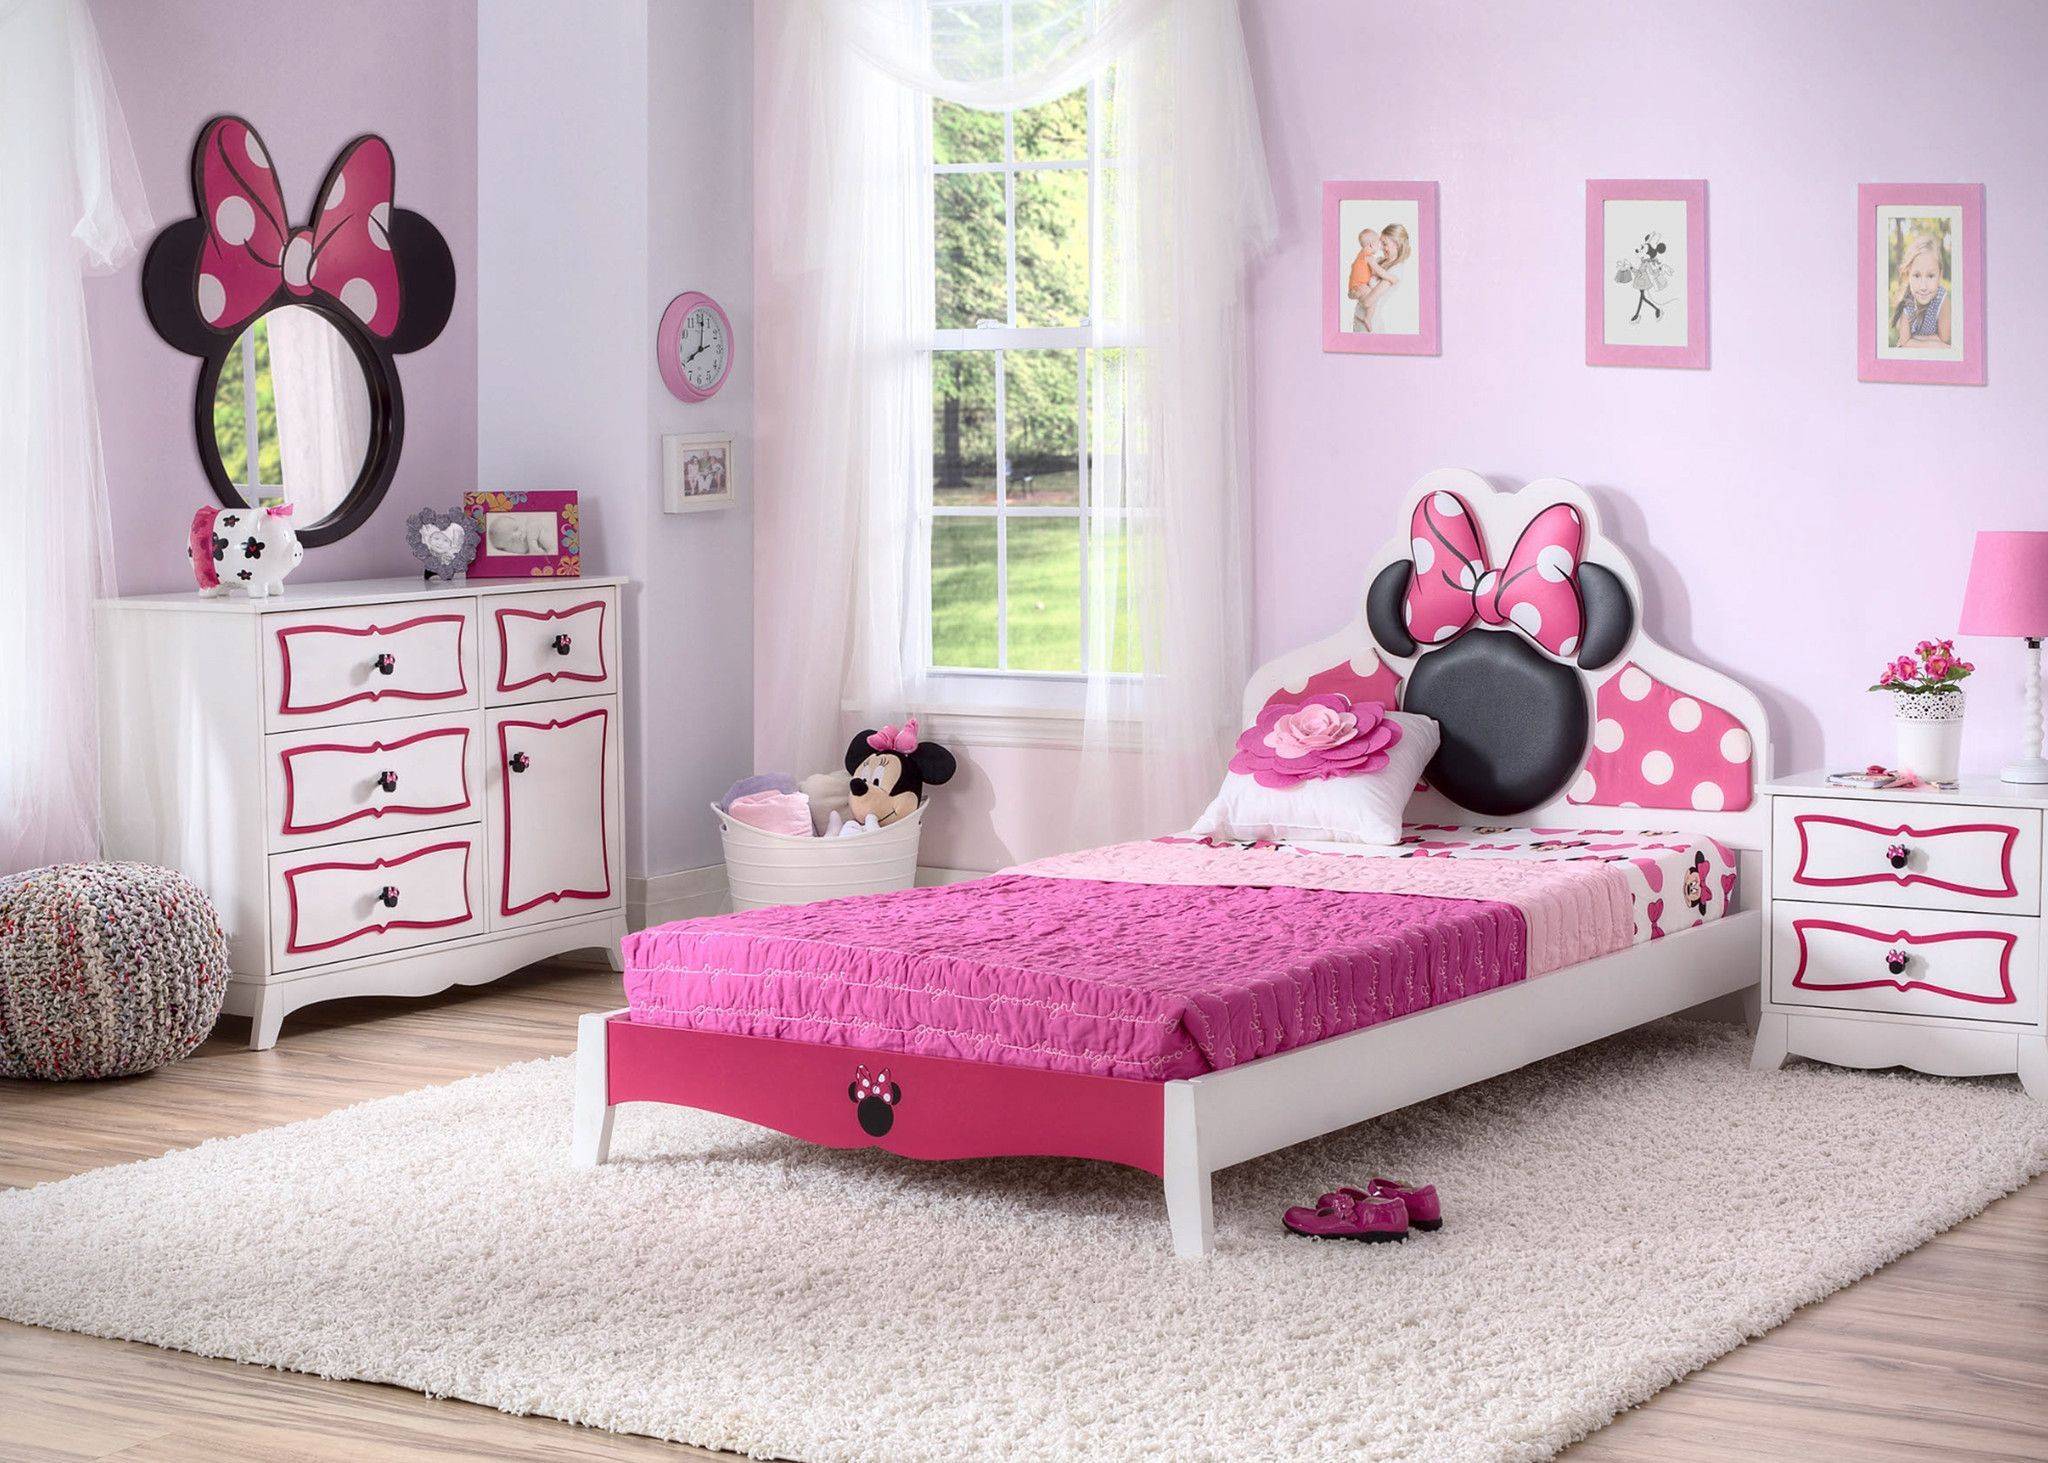 Childrens Room 8-Piece Furniture Set with Image Minnie Mouse